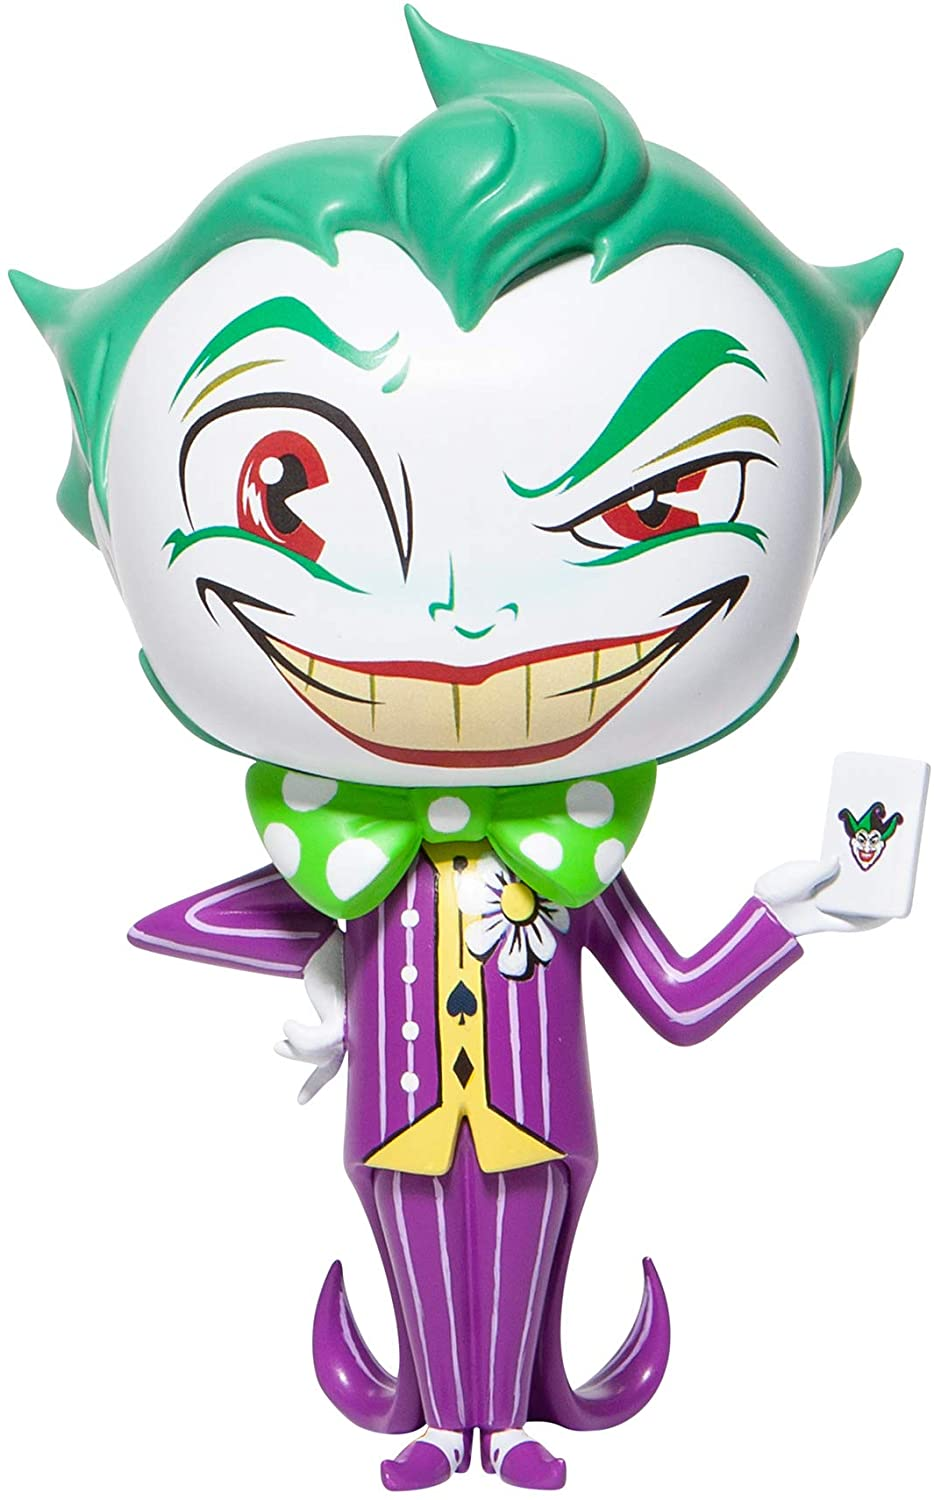 Miss Mindy DC Vinyl - The Joker - Sheldonet Toy Store